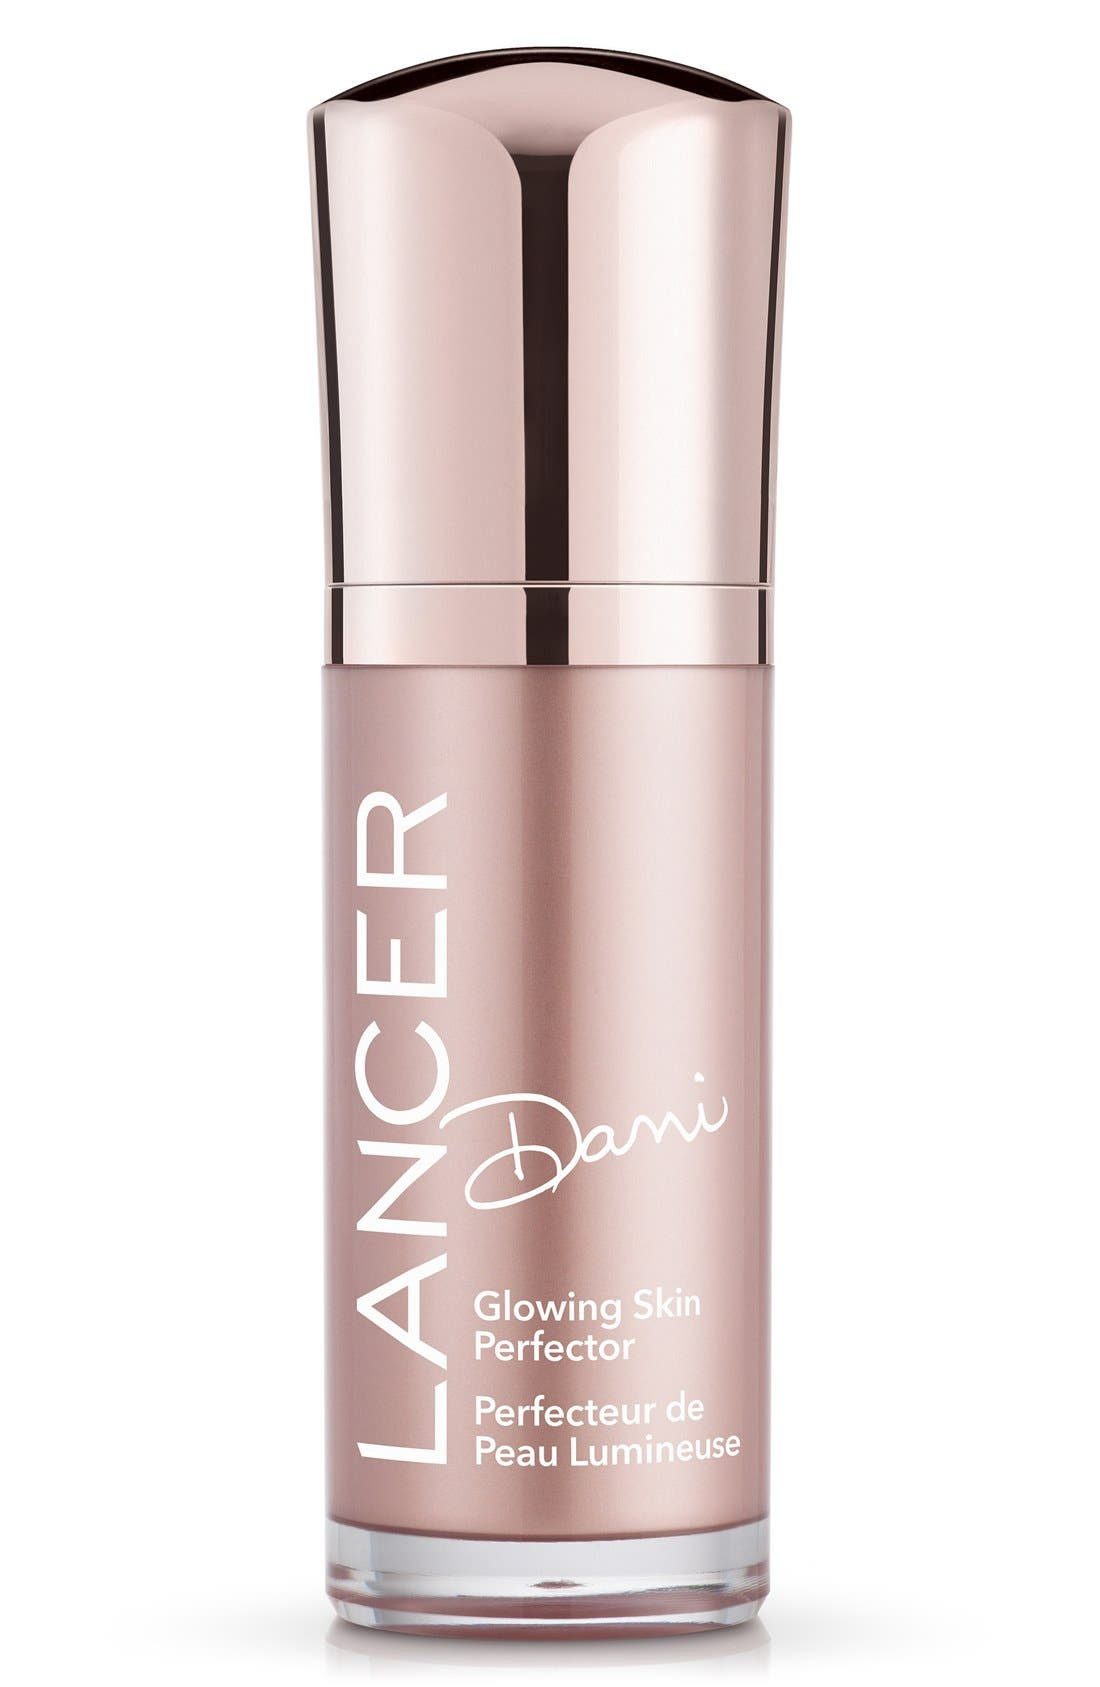 LANCER Skincare Dani Glowing Skin Perfector